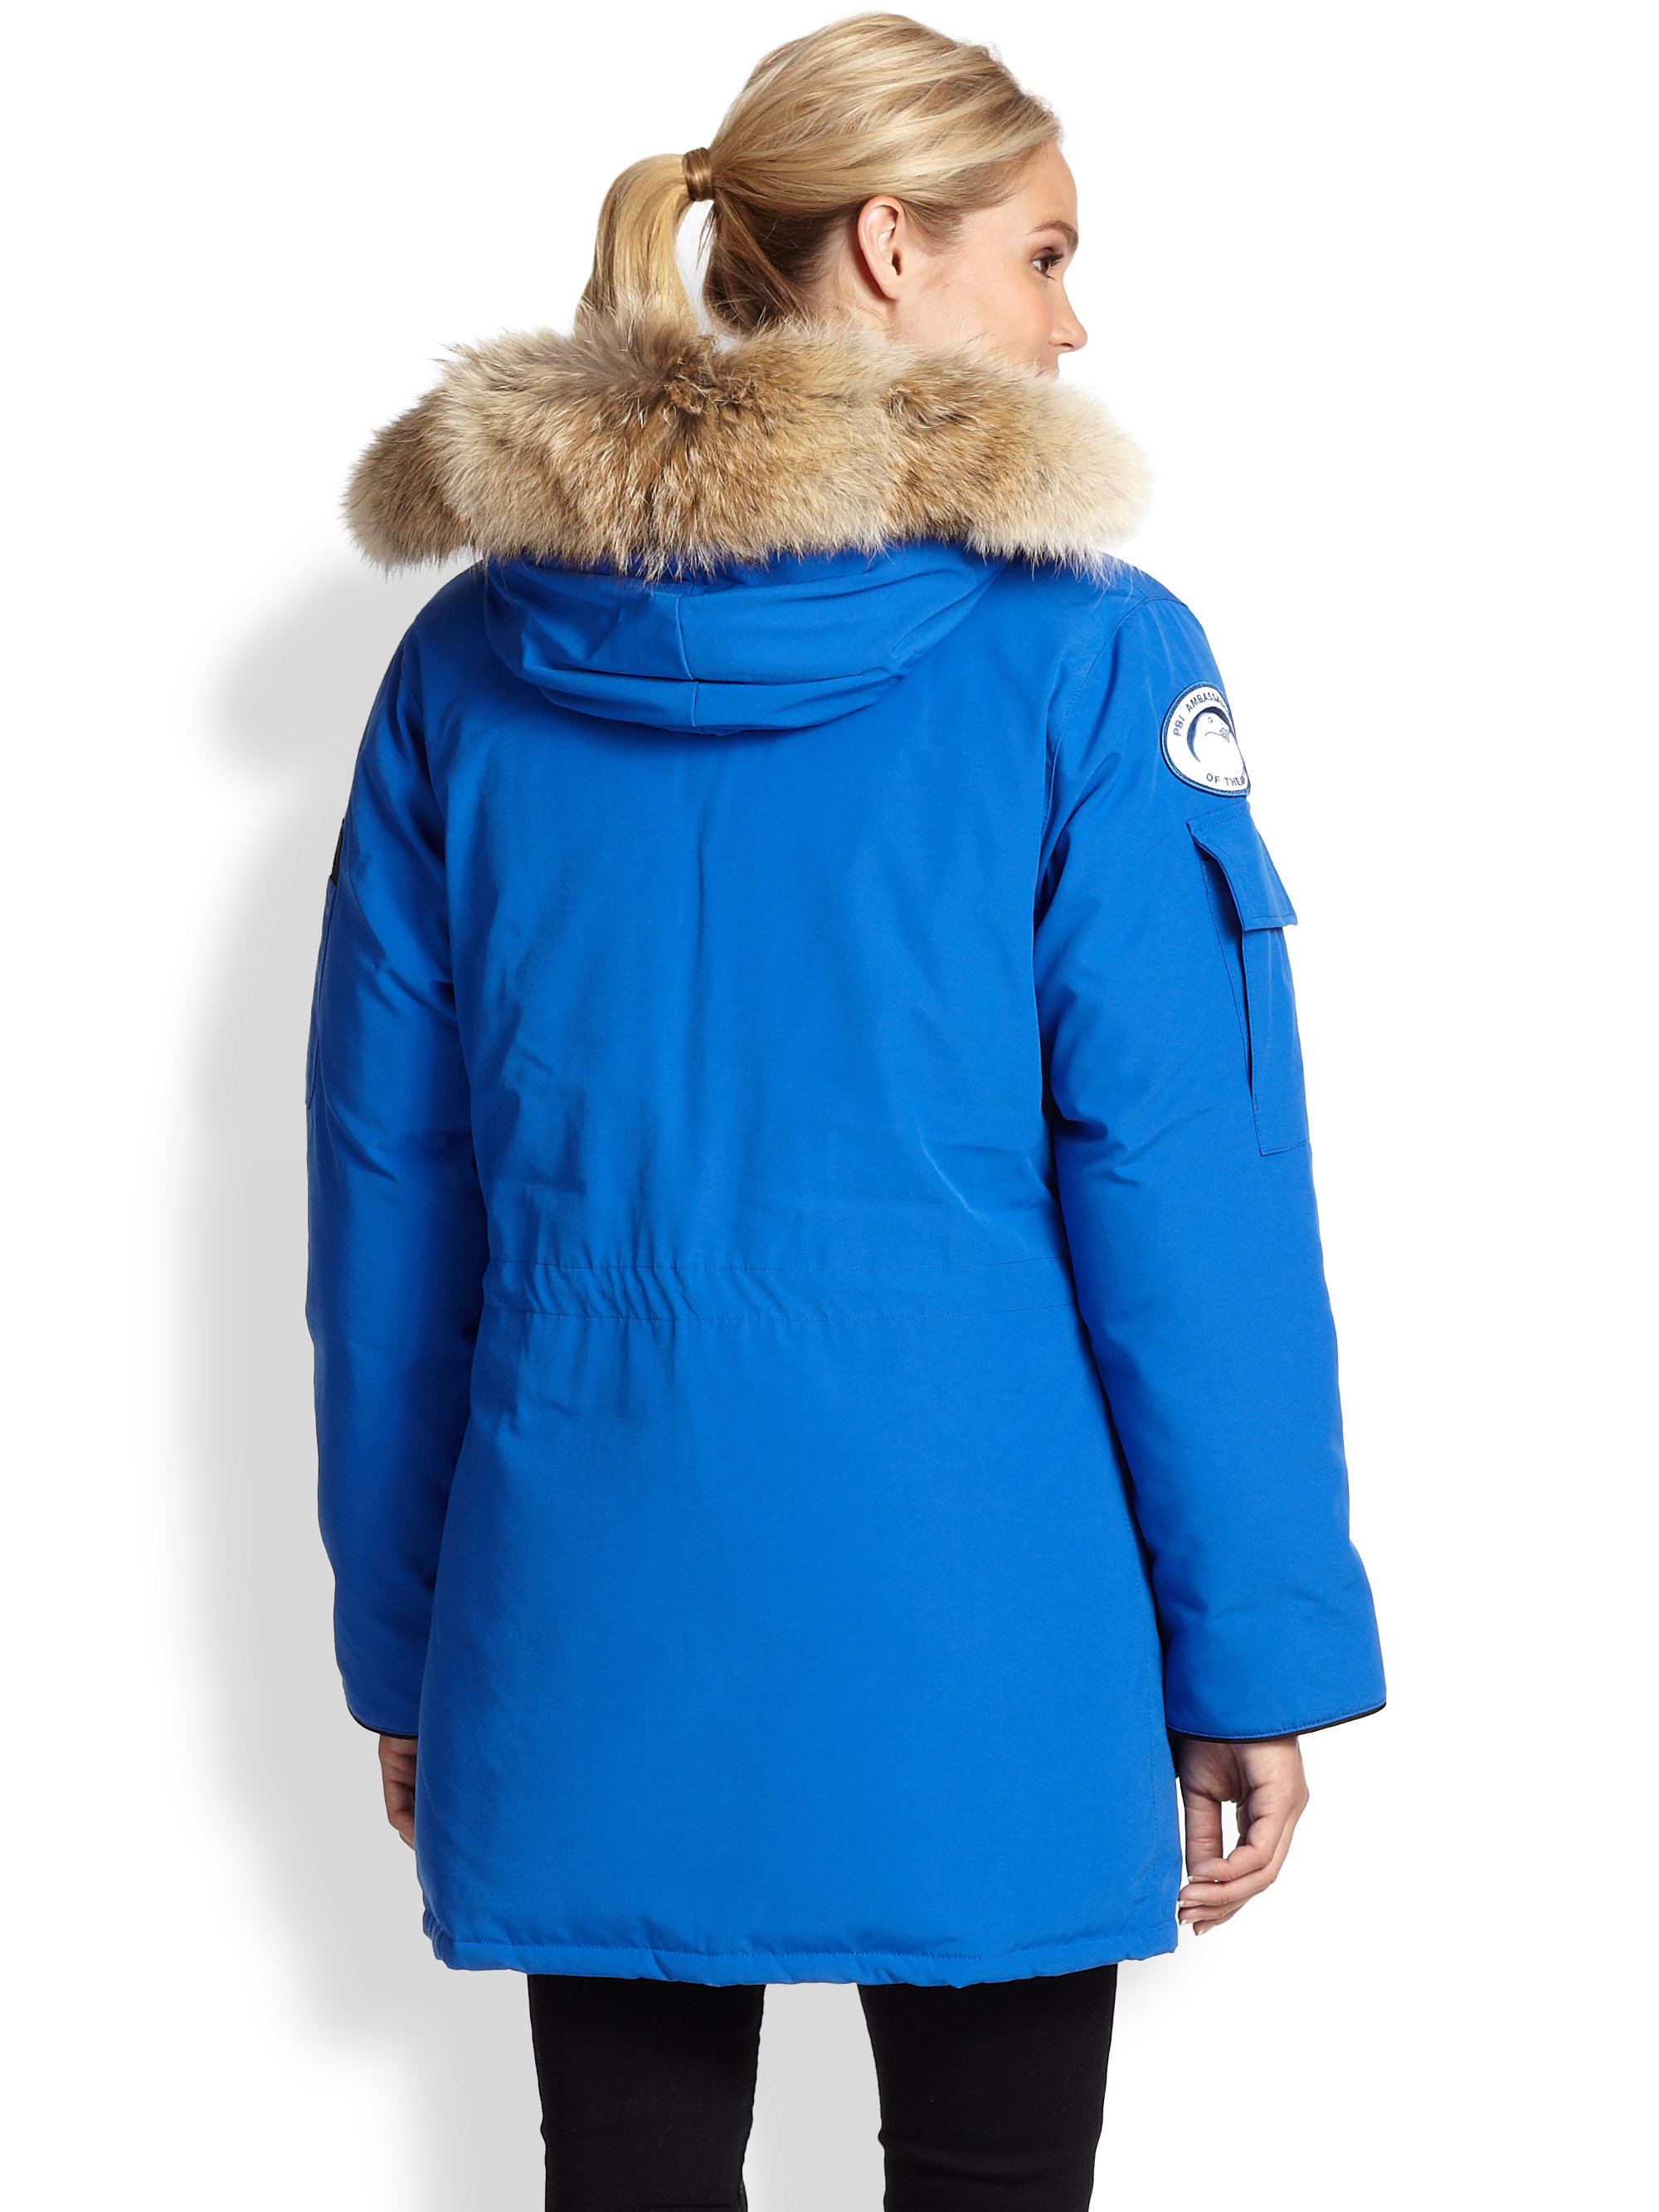 Canada Goose' Women's Expedition Fur Trimmed Parka - Black - Size Small